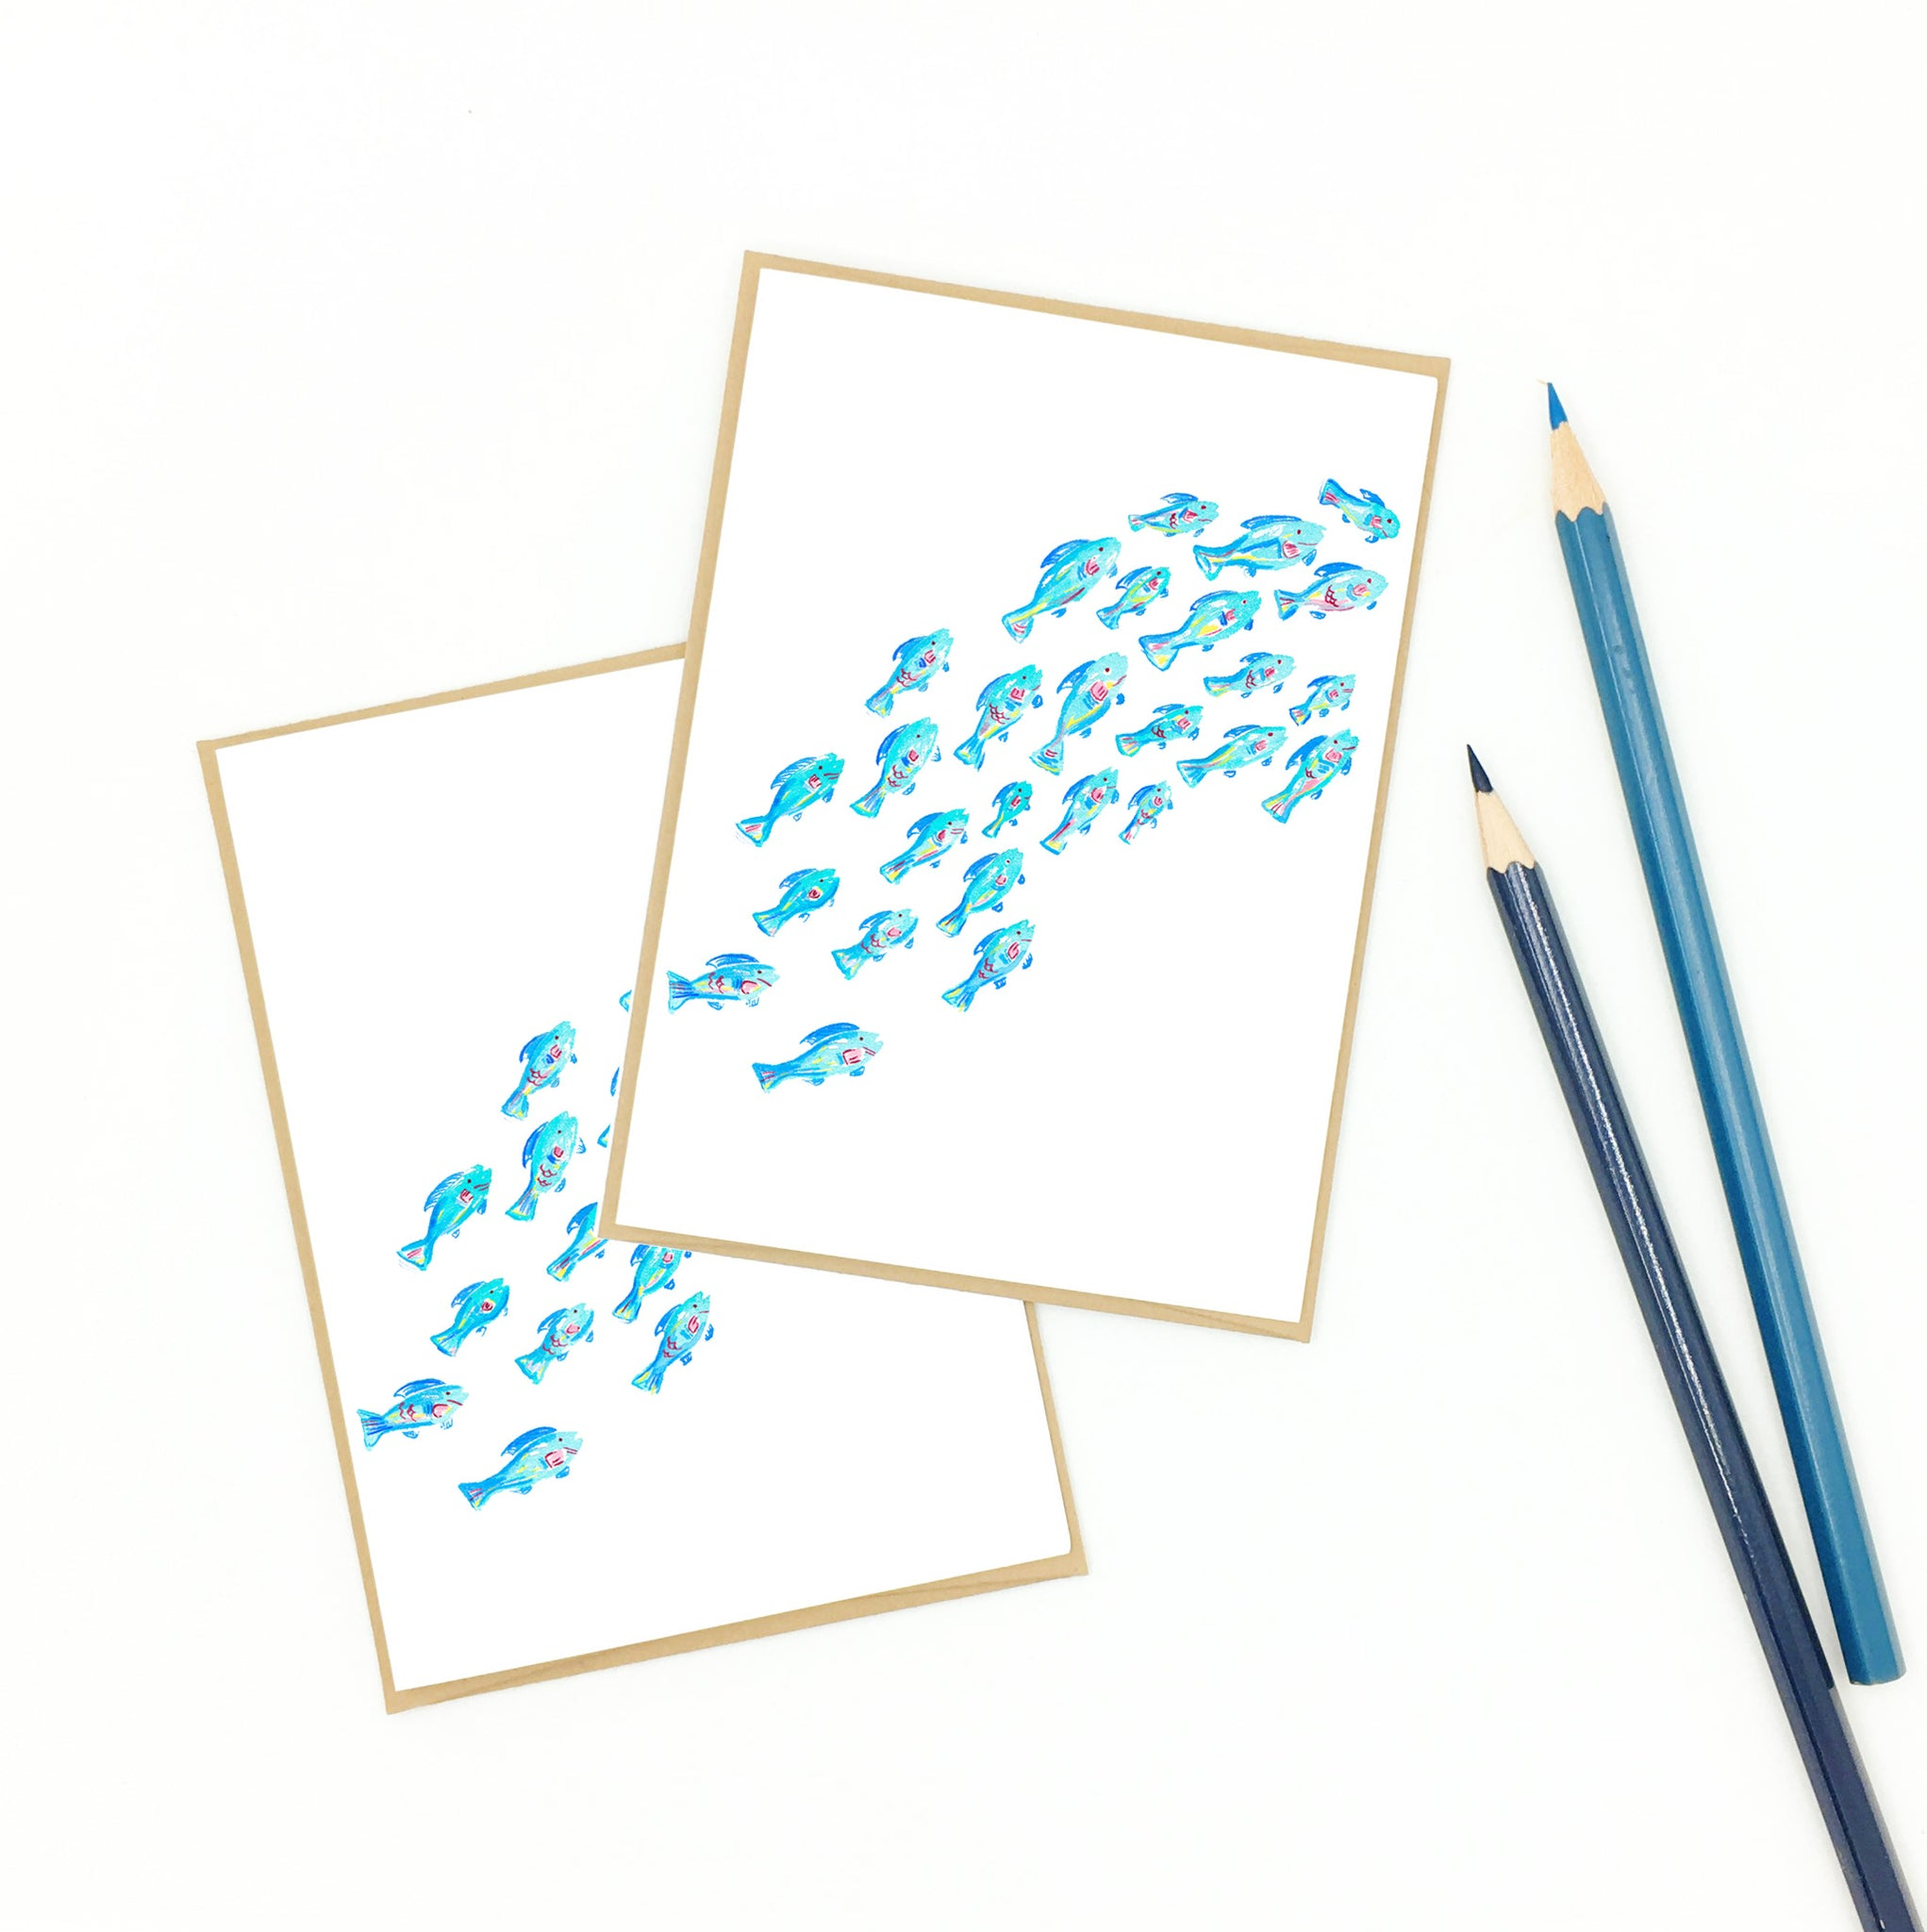 Coral reef gifts, school of parrotfish, boxed notecard set.